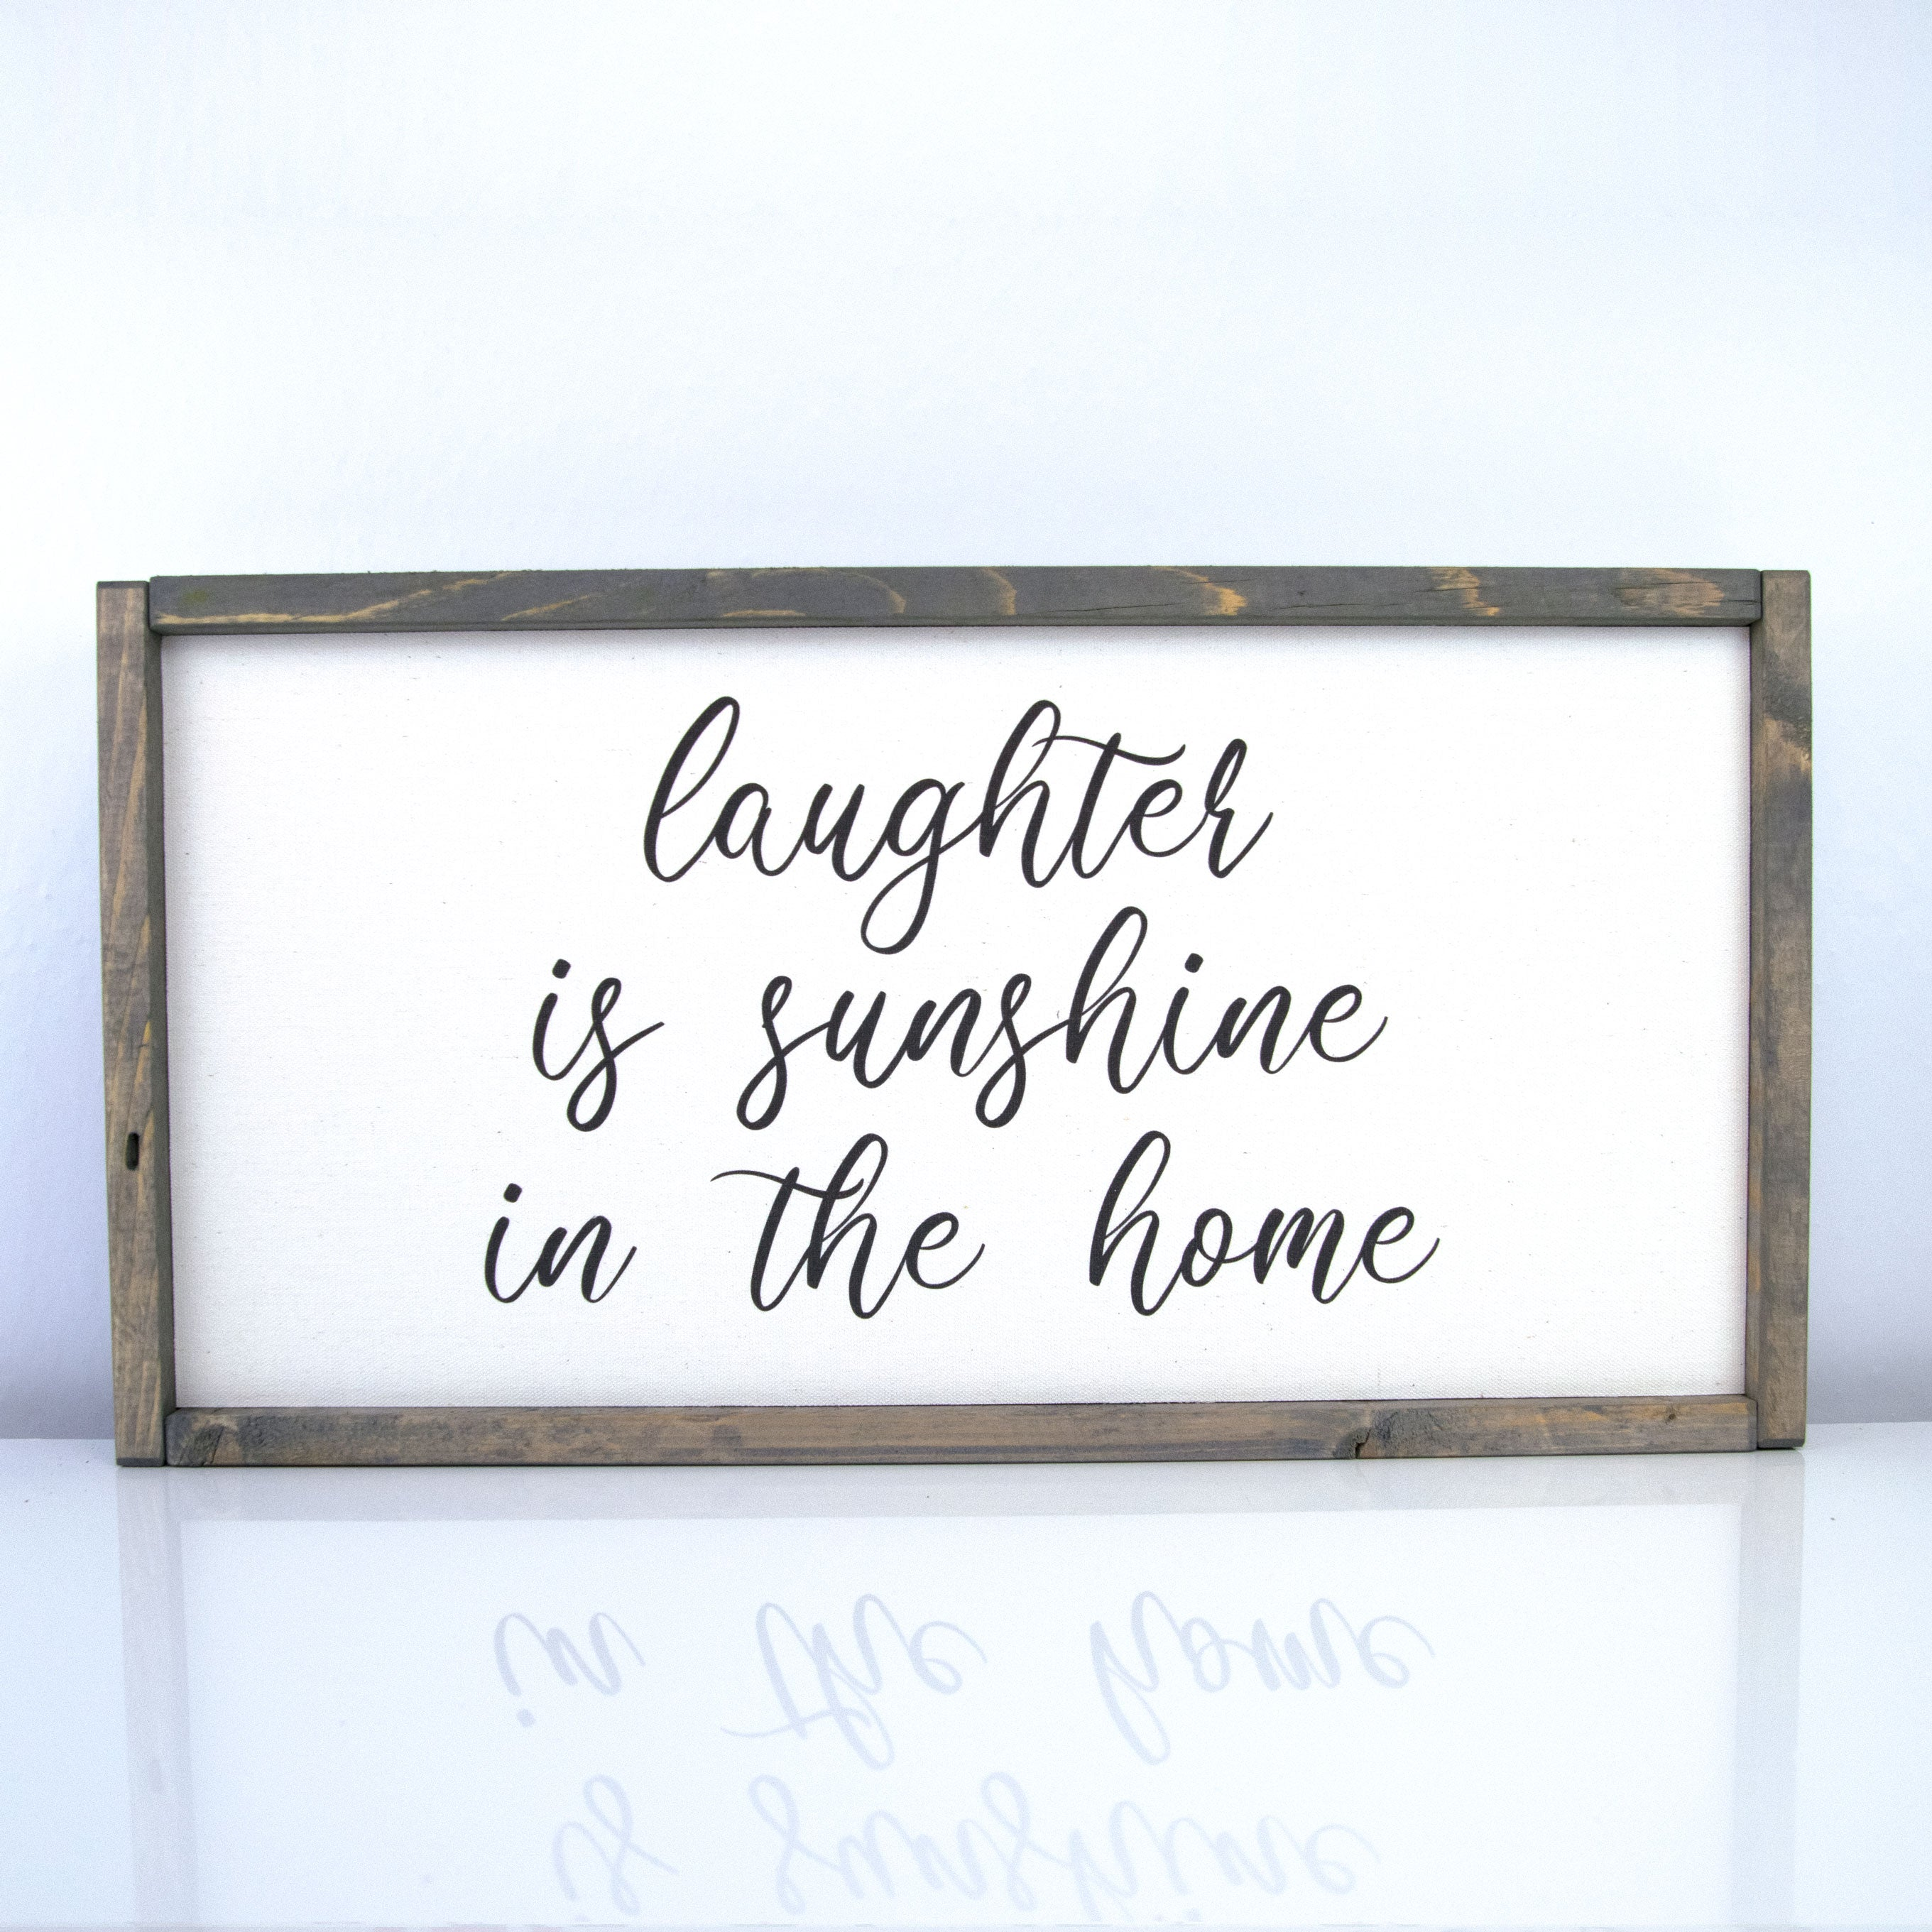 Laughter is Sunshine | 10 x 20 Vintage